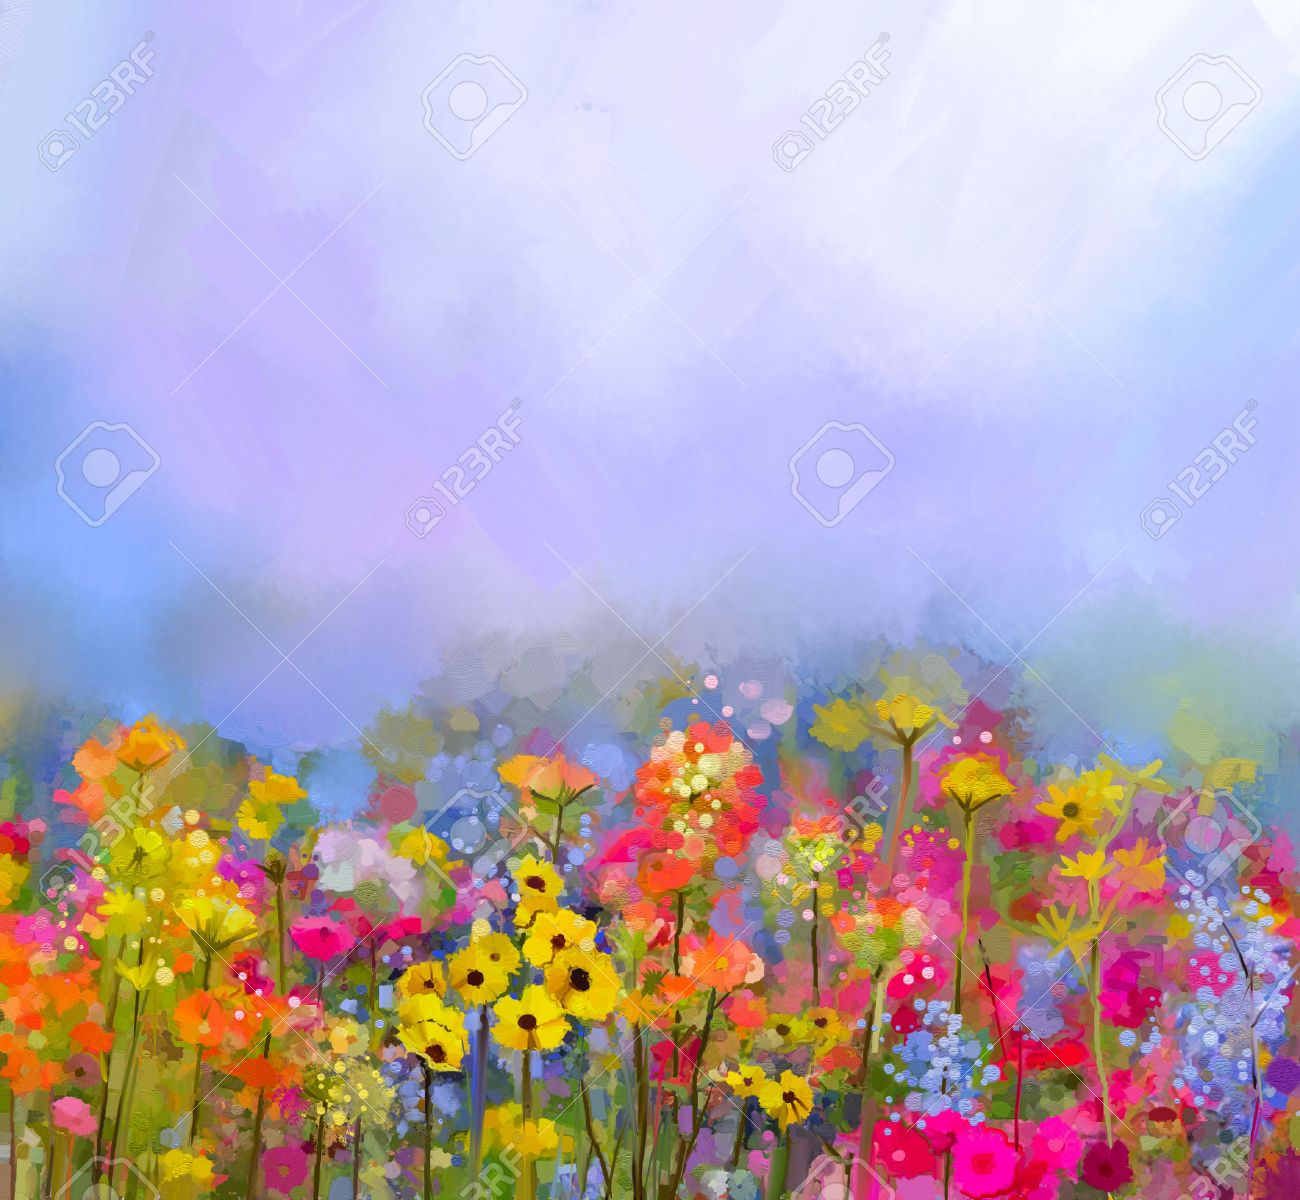 painted daisy stock photos u0026 pictures royalty free painted daisy